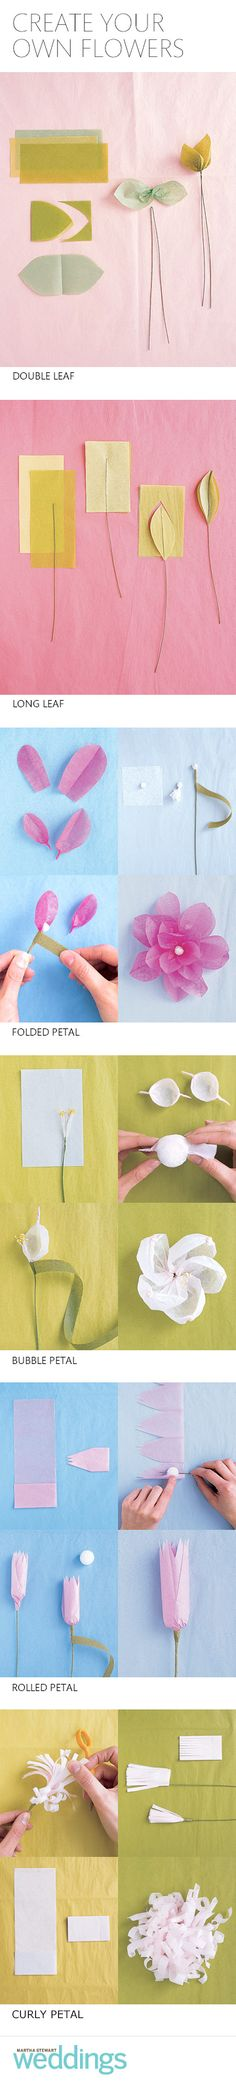 Learn how to craft these paper flowers your wedding.